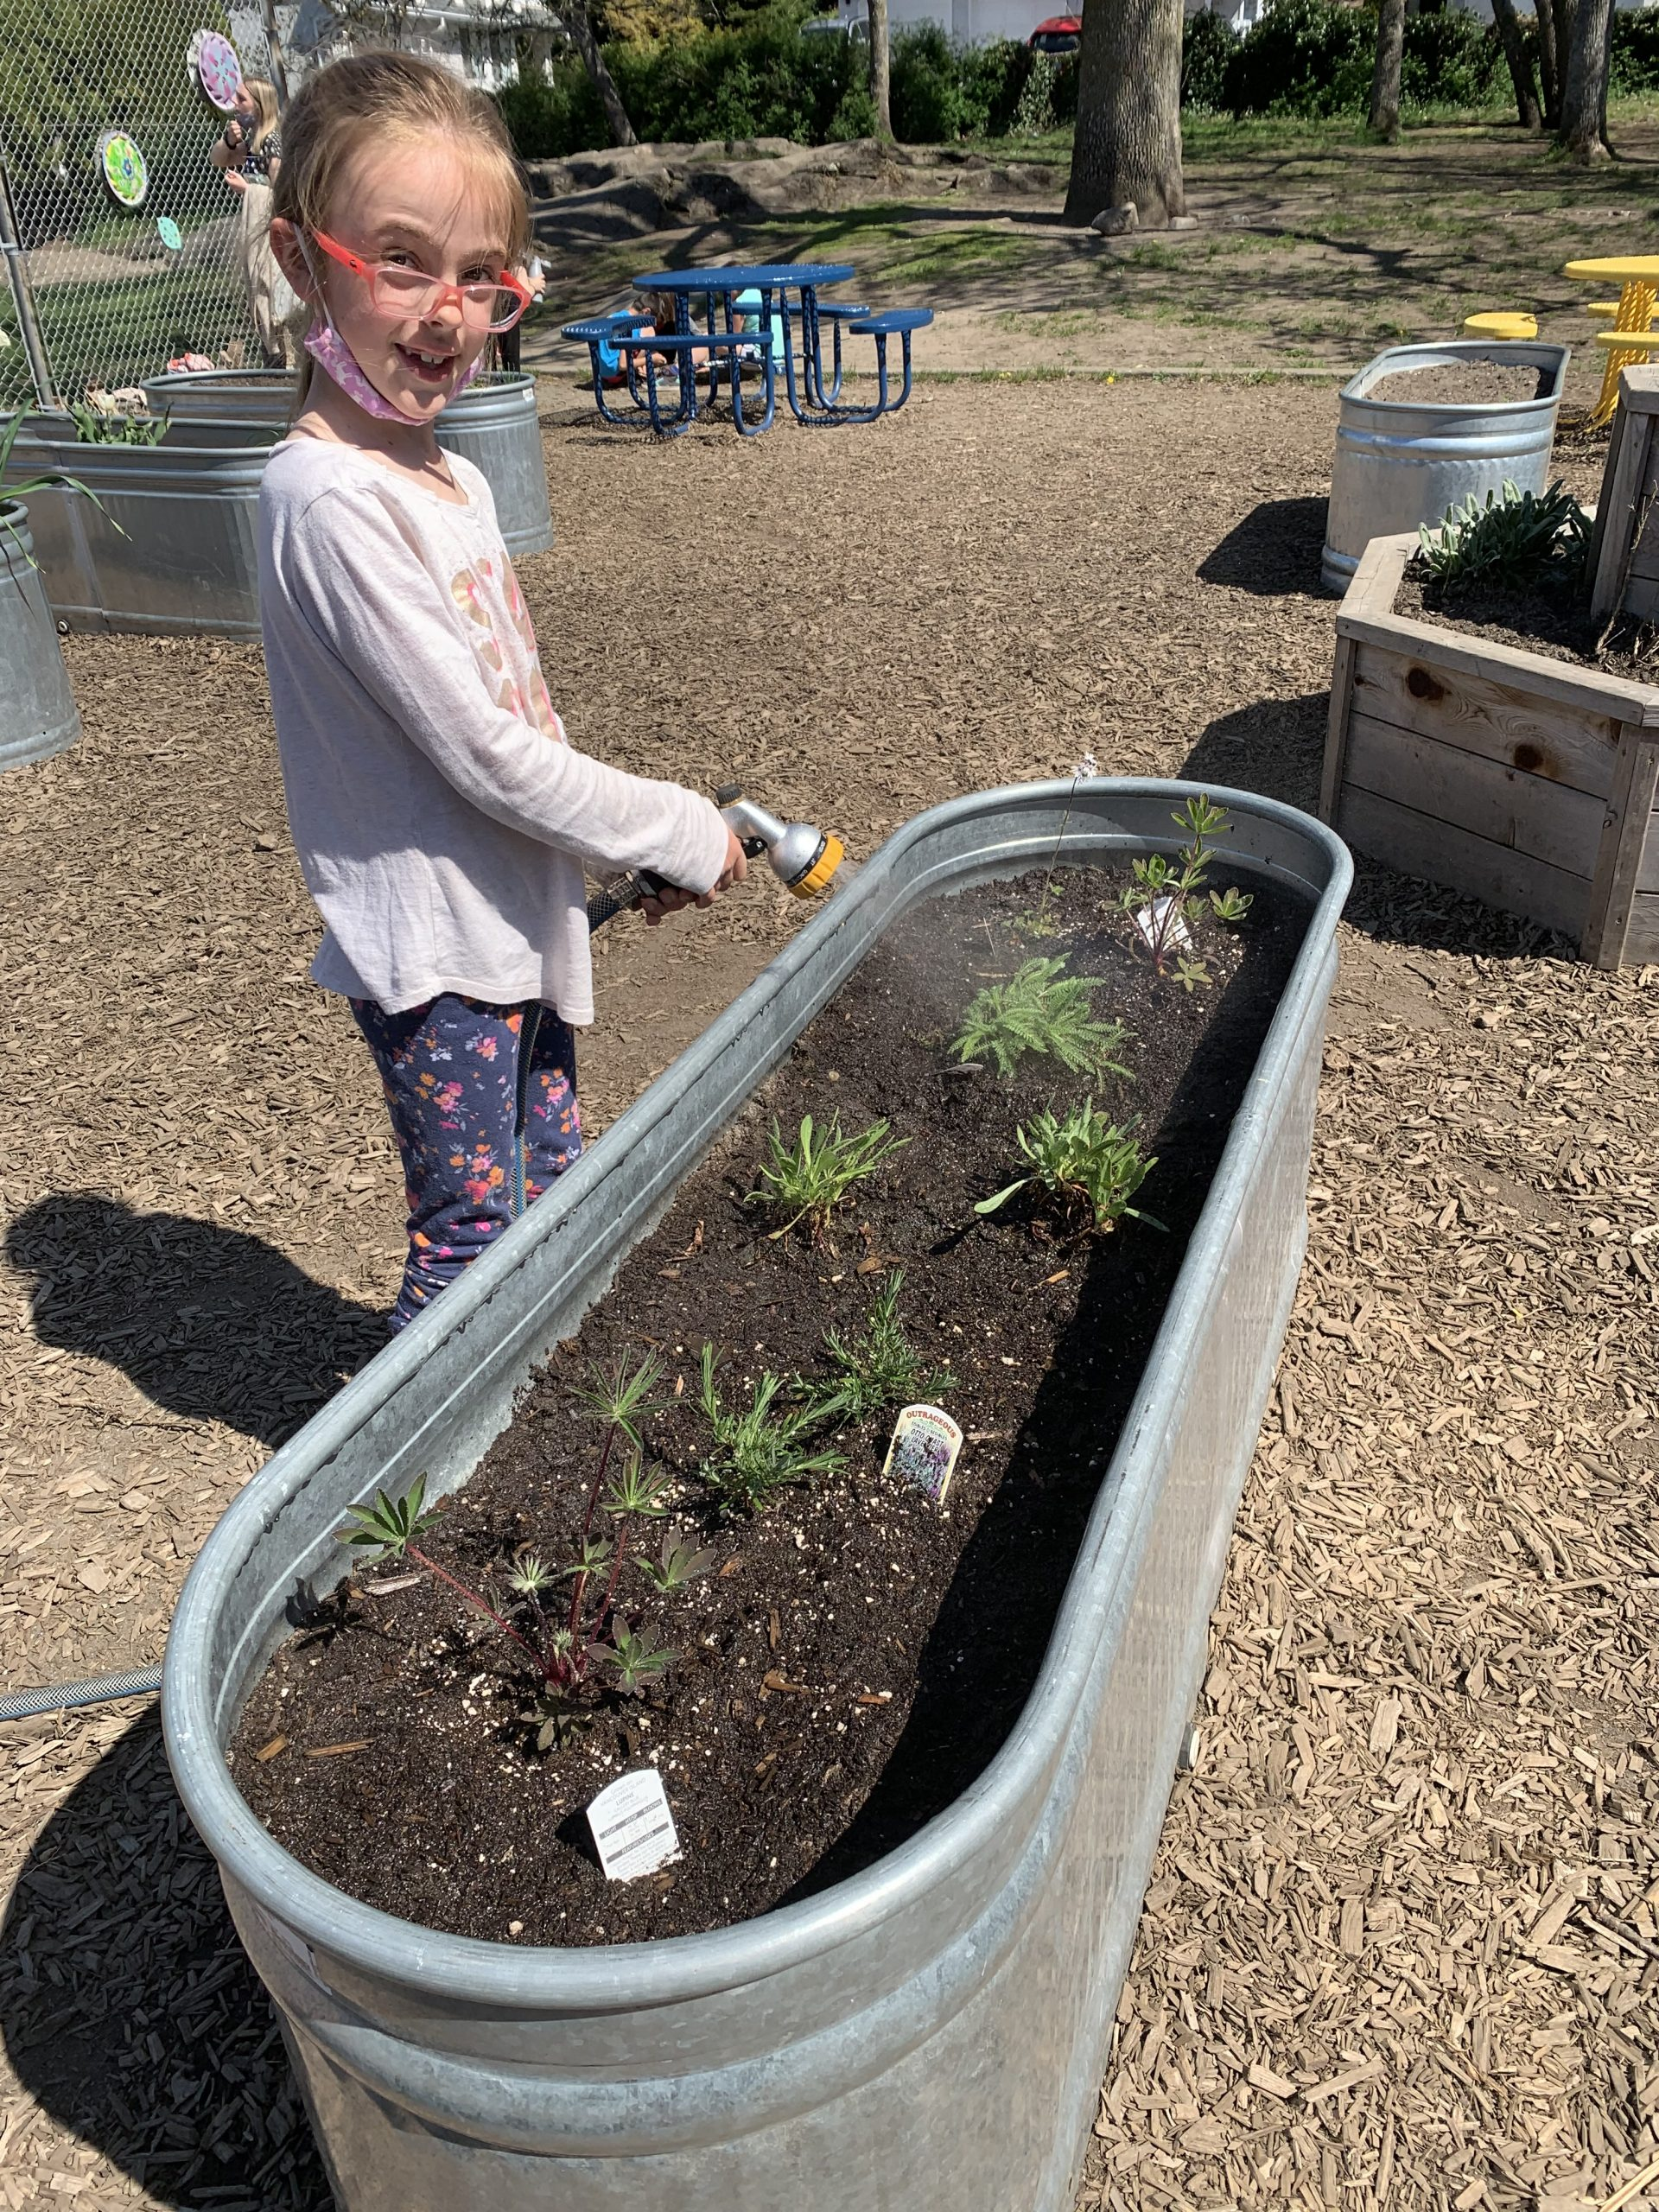 Quadra students are enjoying mindful moments while taking care of our school garden boxes!